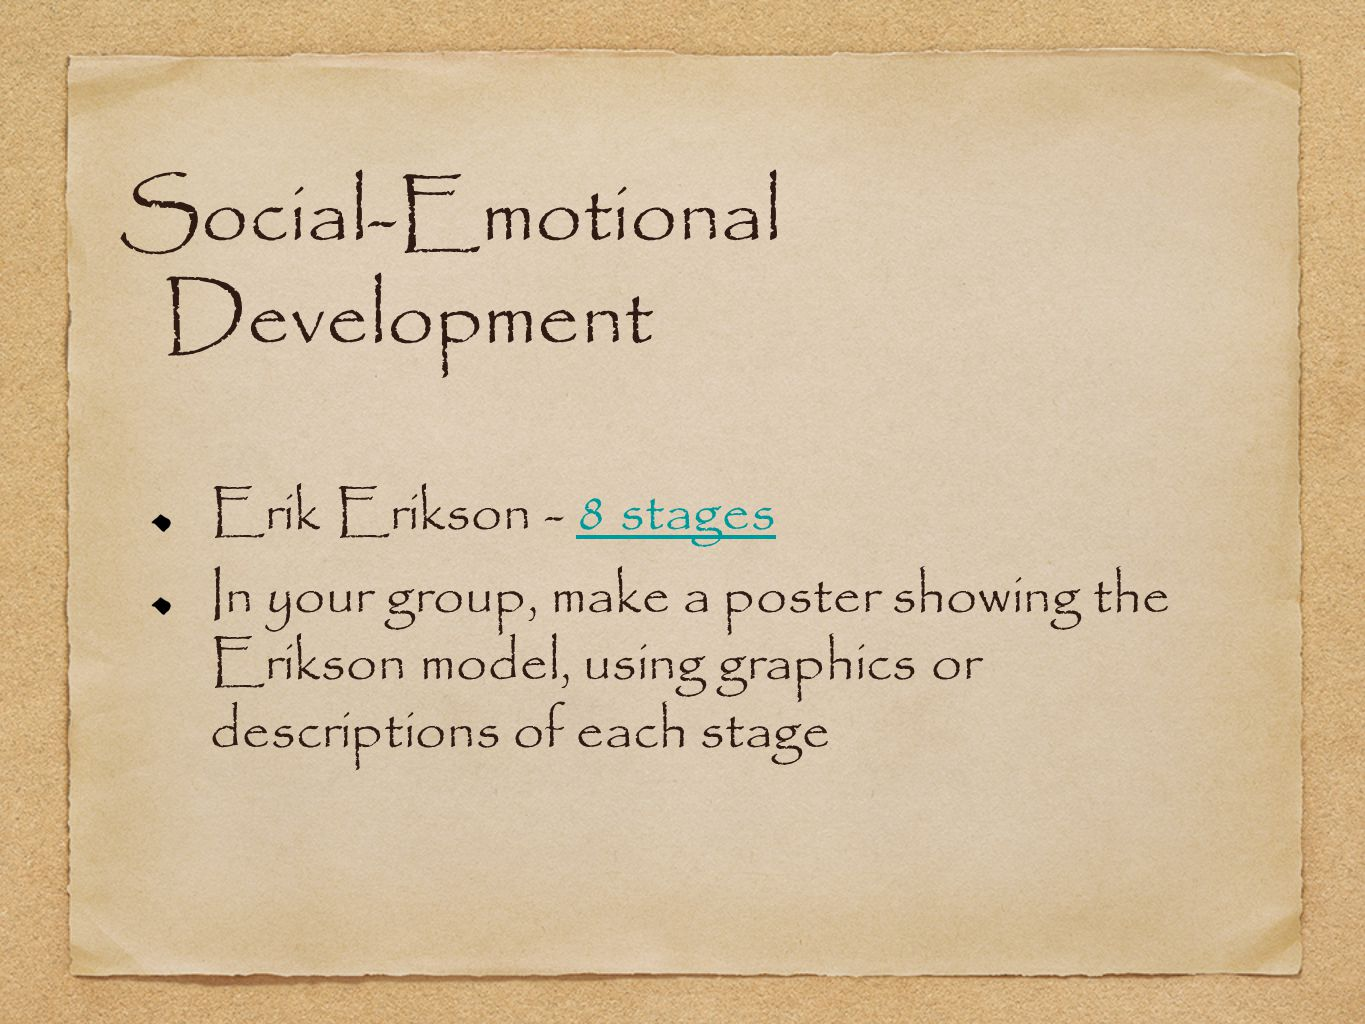 Social-Emotional Development Erik Erikson - 8 stages8 stages In your group, make a poster showing the Erikson model, using graphics or descriptions of each stage